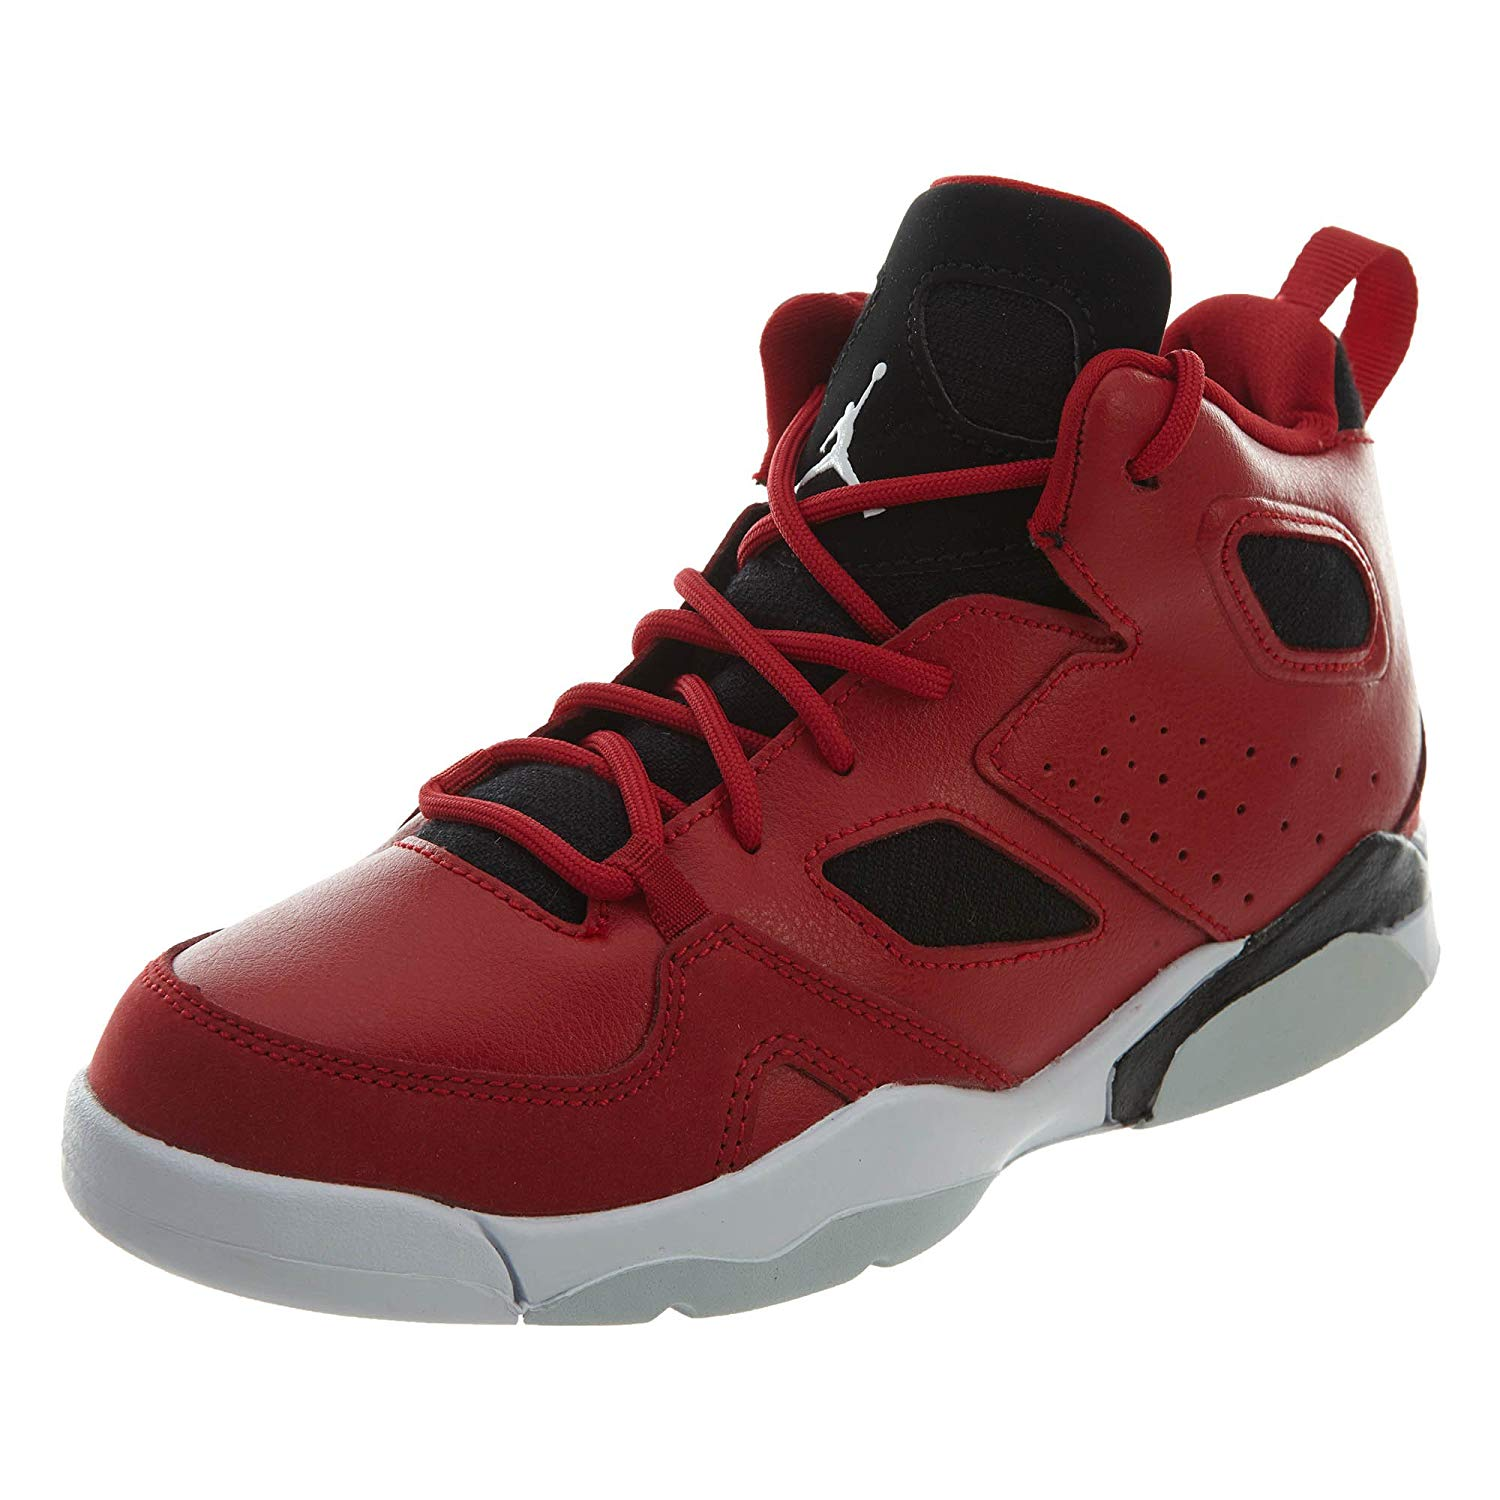 aa8059db95fa2 Get Quotations · Jordan Kids Flight Club 91 (PS) Gym RED White Black Size  11.5